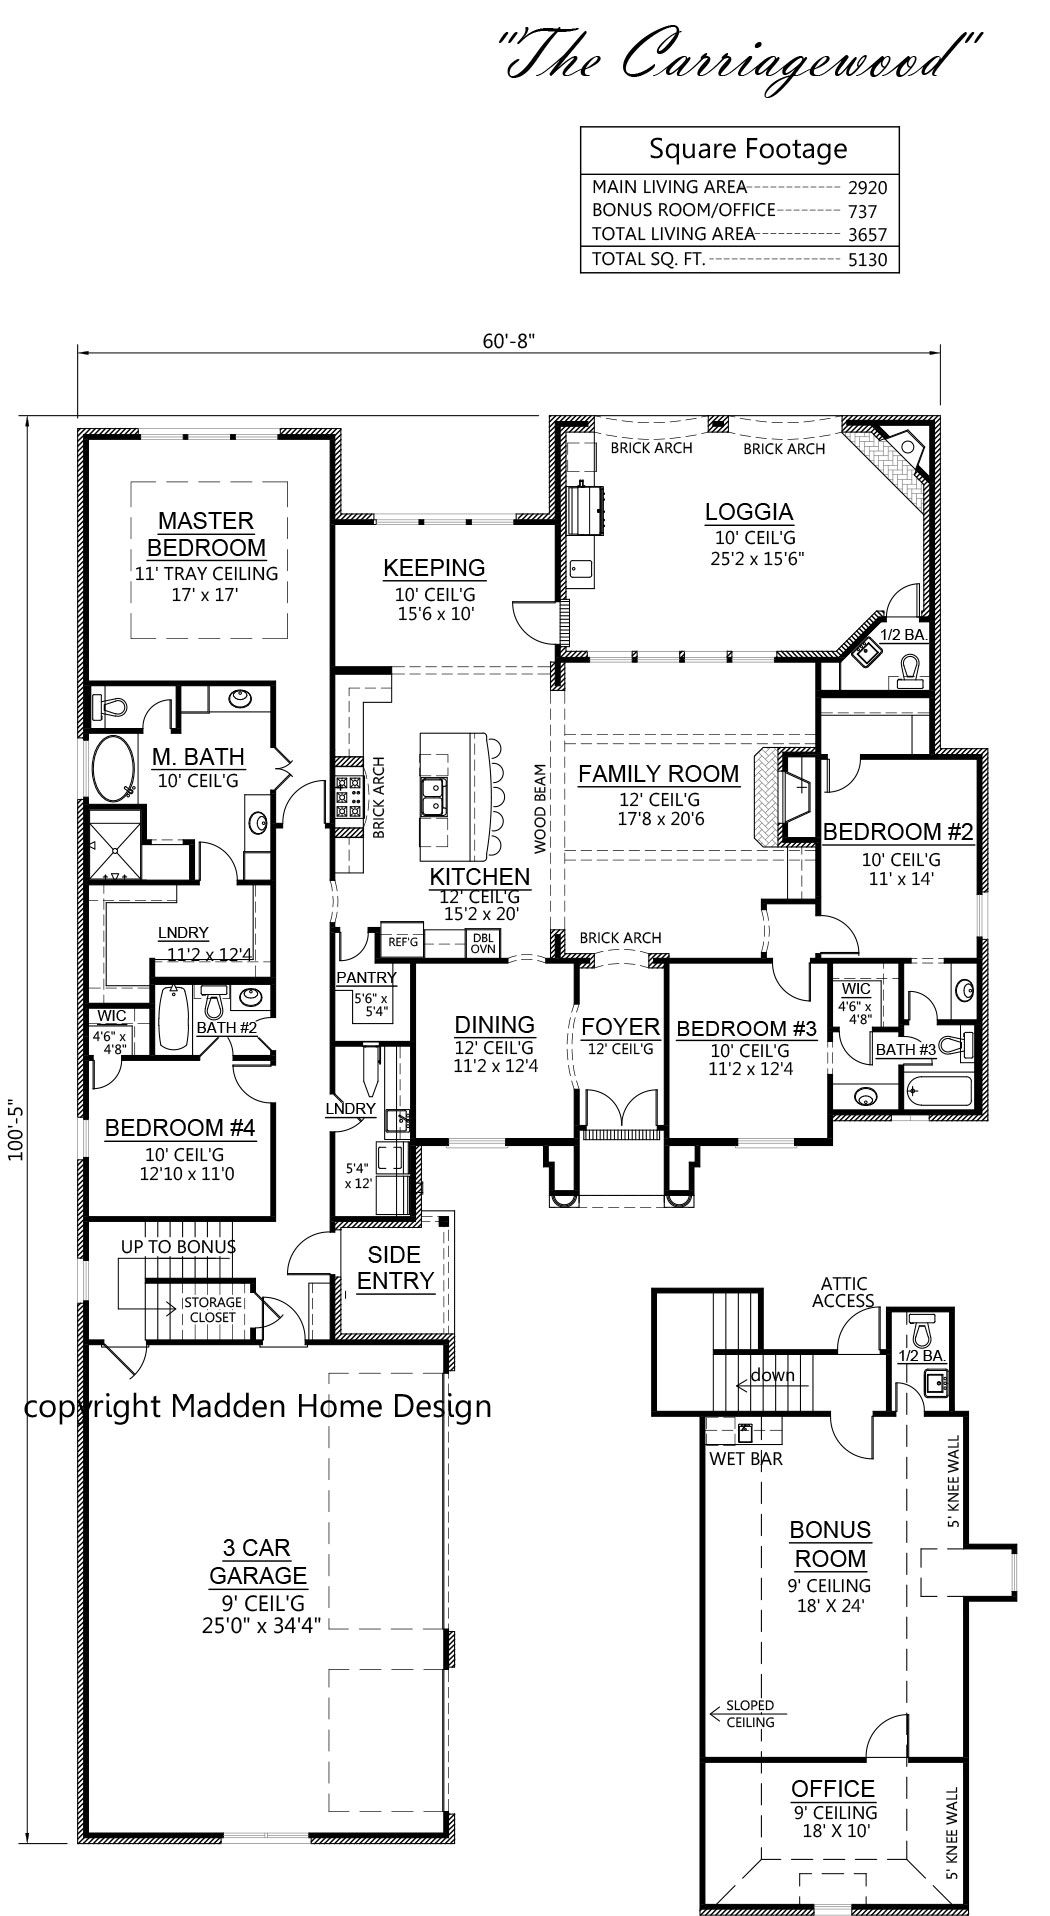 Madden Home Design   The Carriagewood LOVE This One!! Needs Shower Above  Garage For